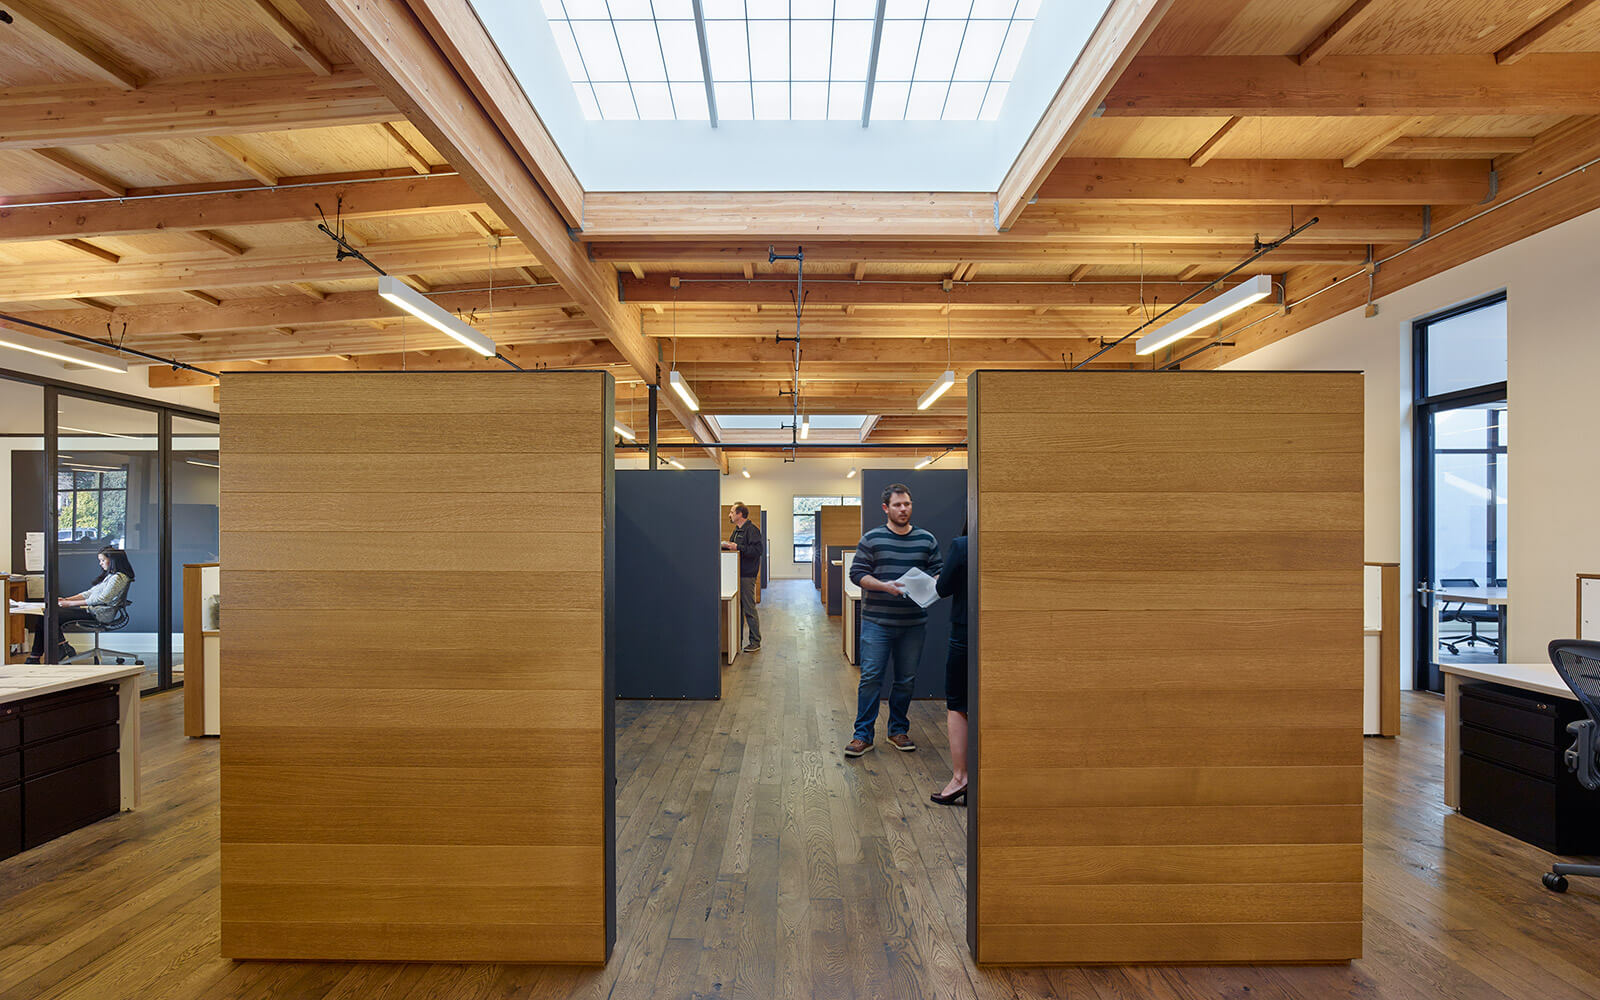 studio vara case study redwood highway workspace interior